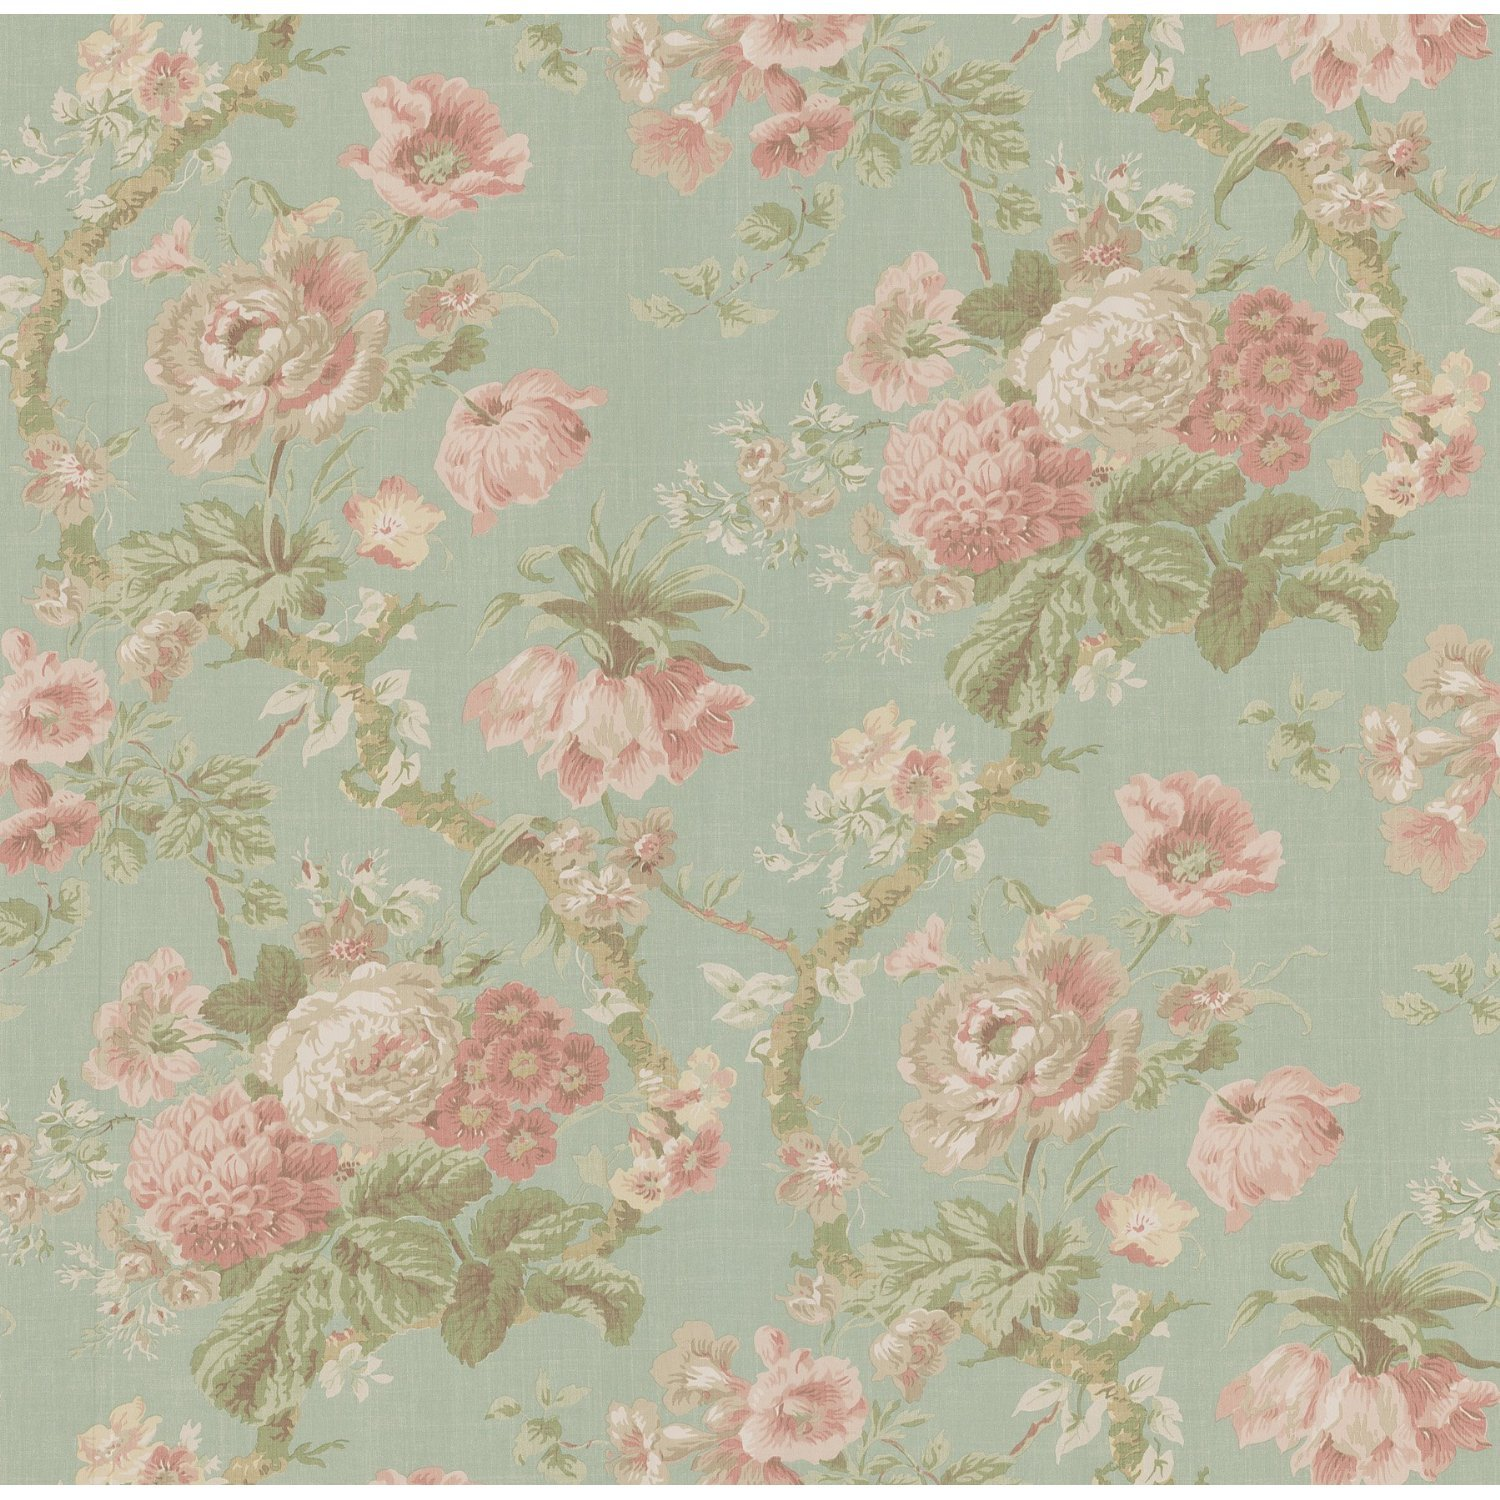 wallpaper Wallpaper Uk Floral 1500x1500